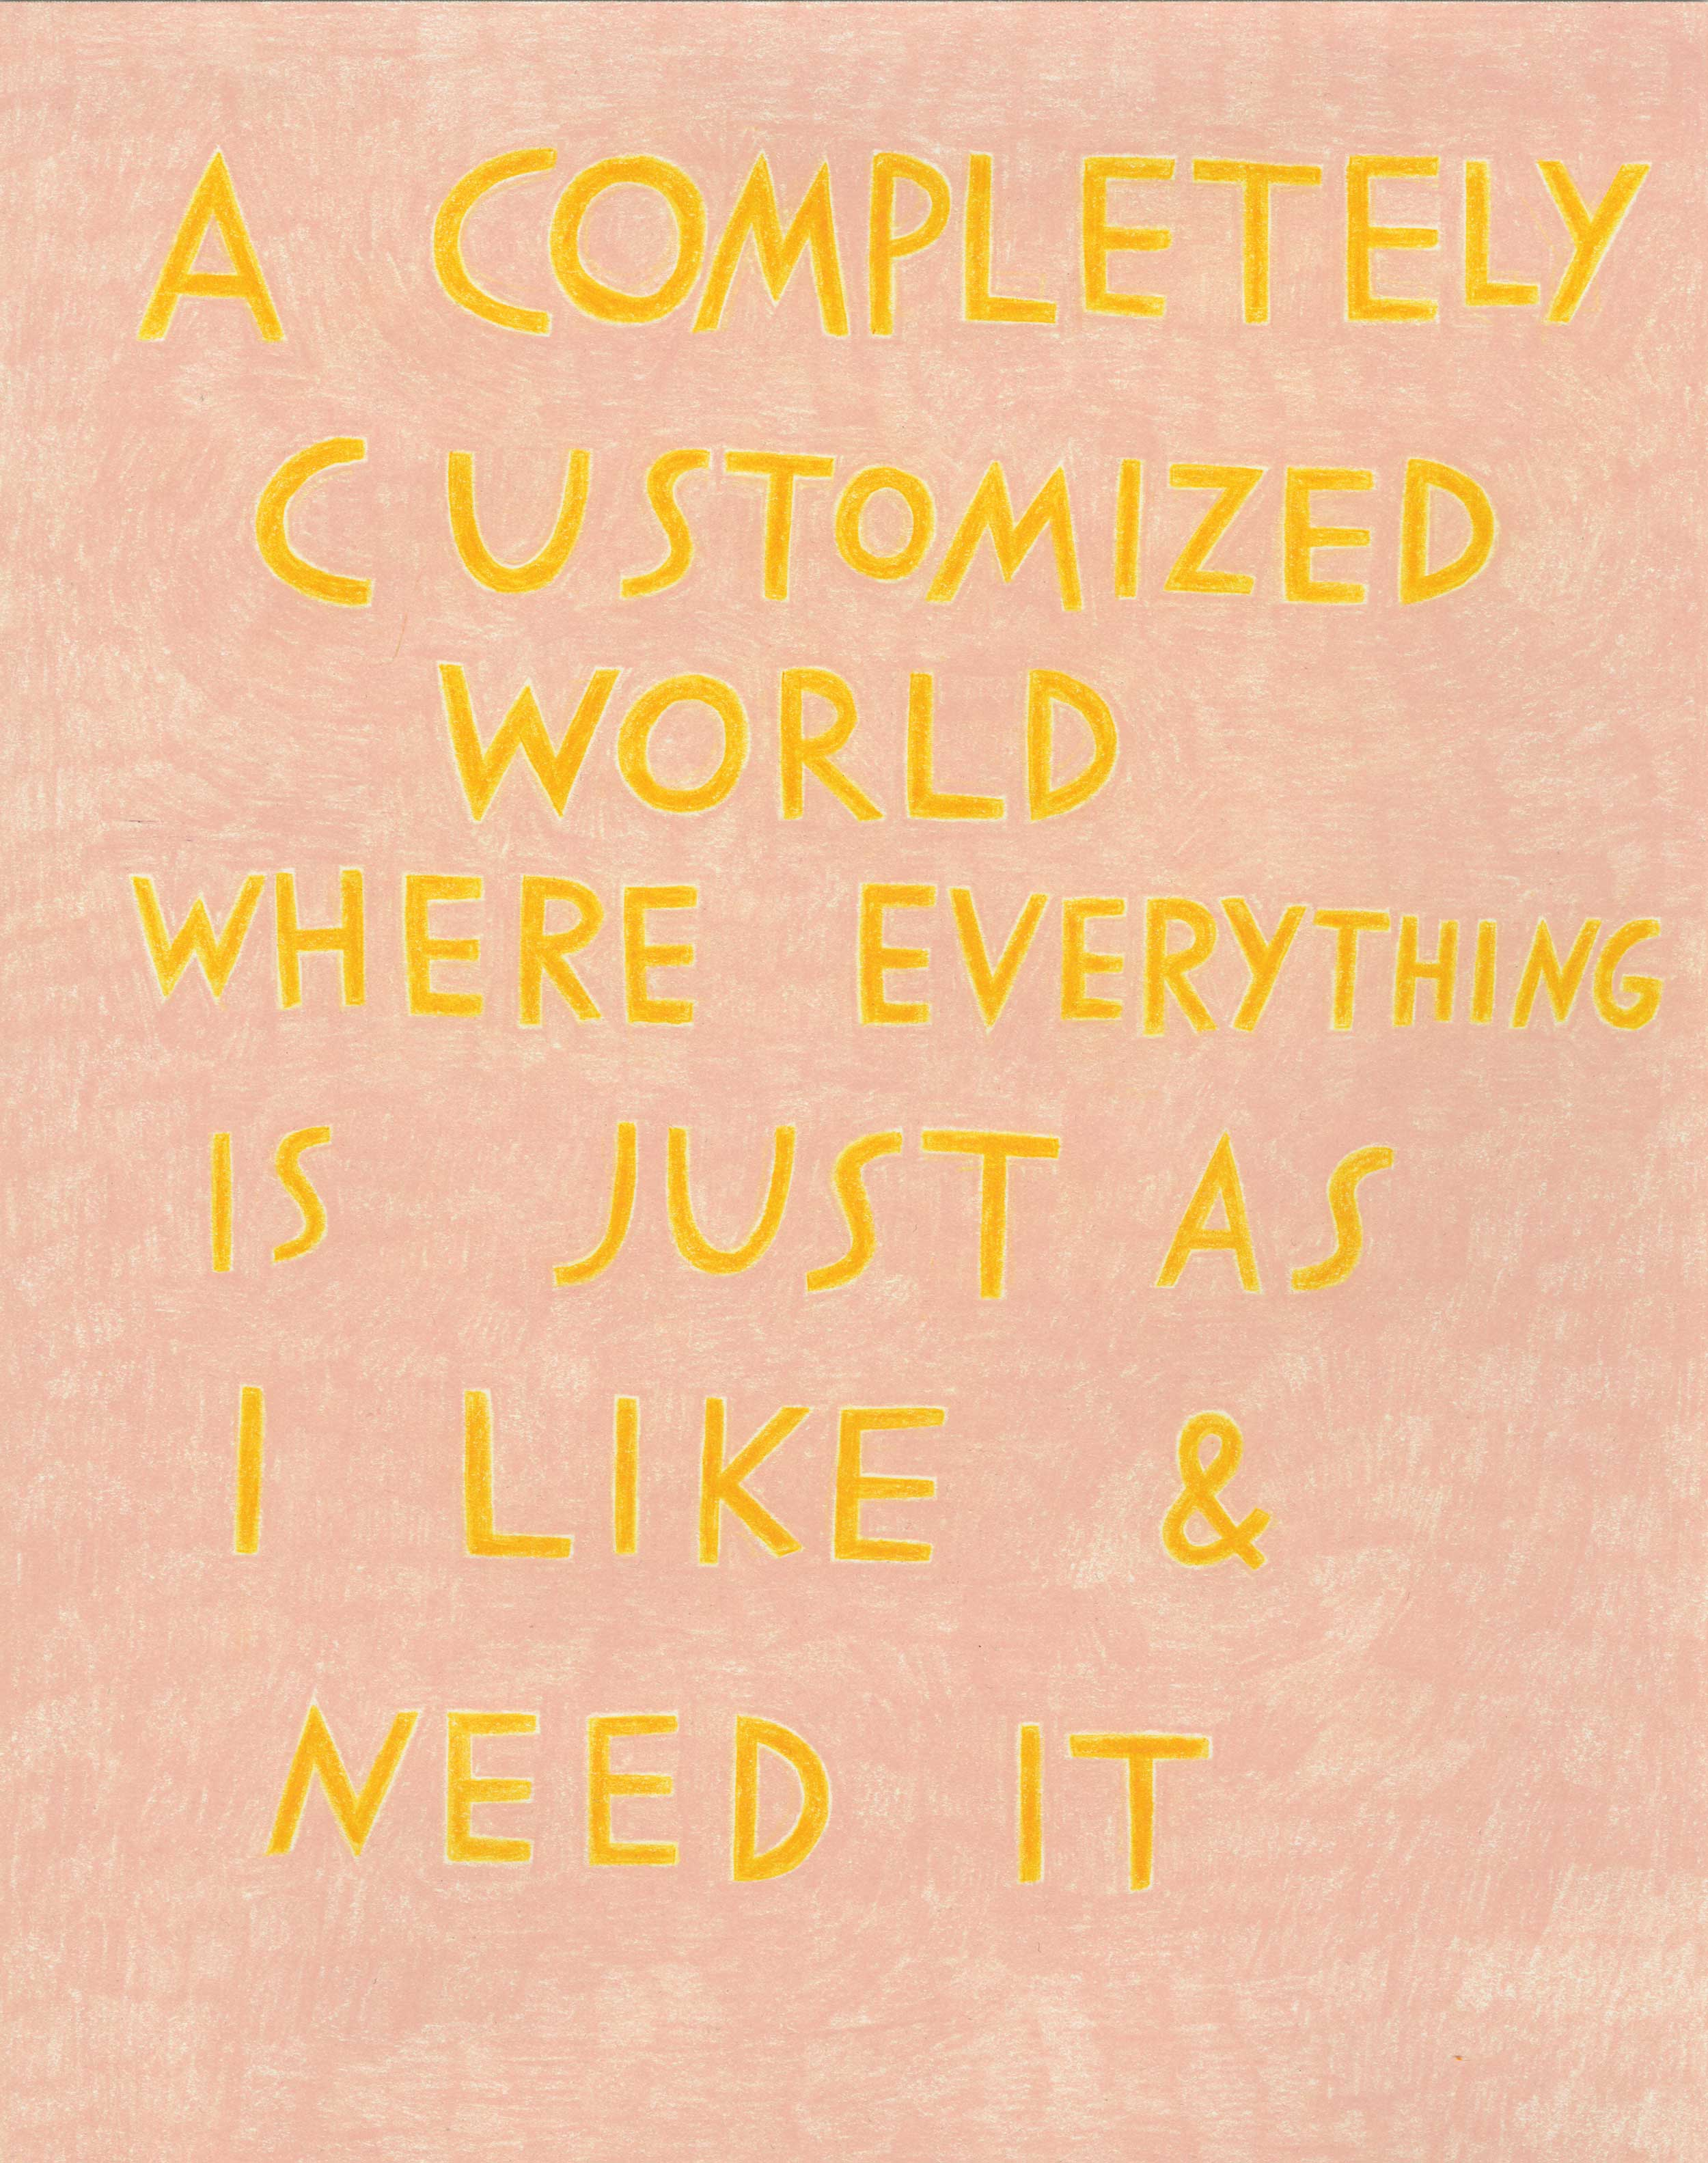 """""""A completely customized world where everything is just as I like and need it,"""" in golden yellow on pale pink."""